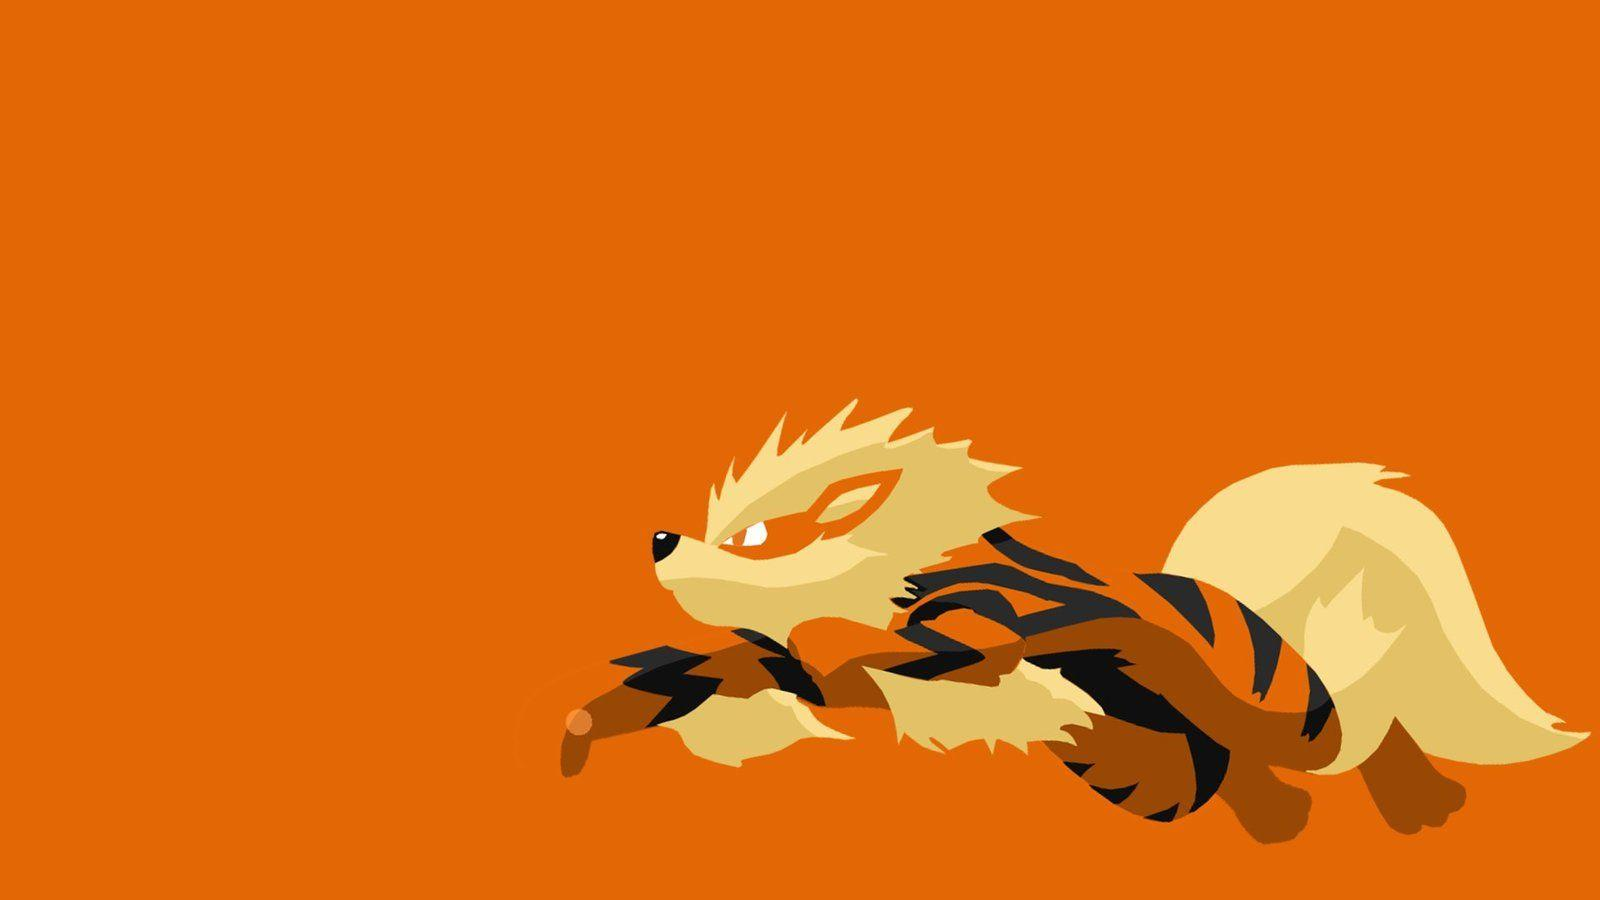 Arcanine Wallpaper on MarkInternational.info